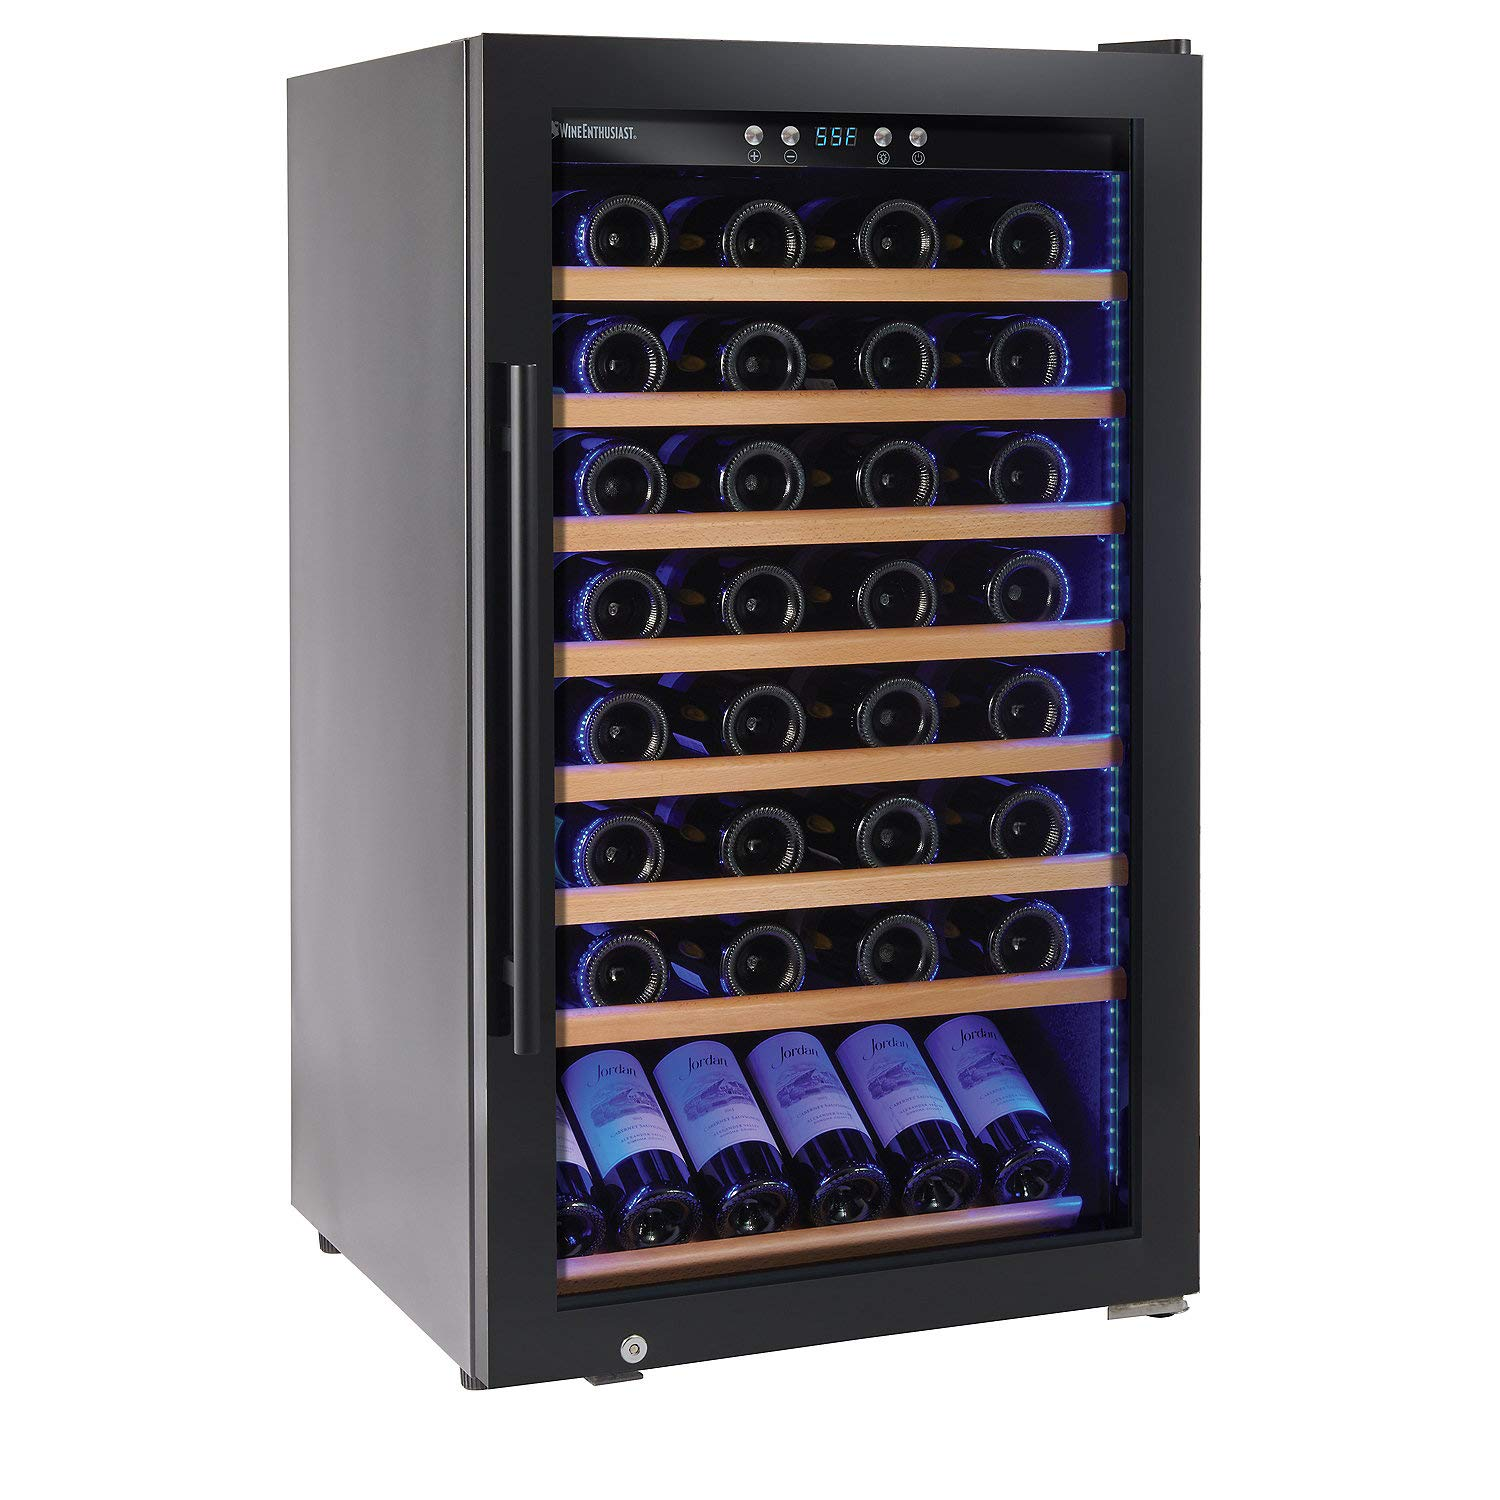 Wine Enthusiast Classic L 80 Bottle Wine Cellar - Freestanding Wine Refrigerator by Wine Enthusiast Classic Wine Cellars